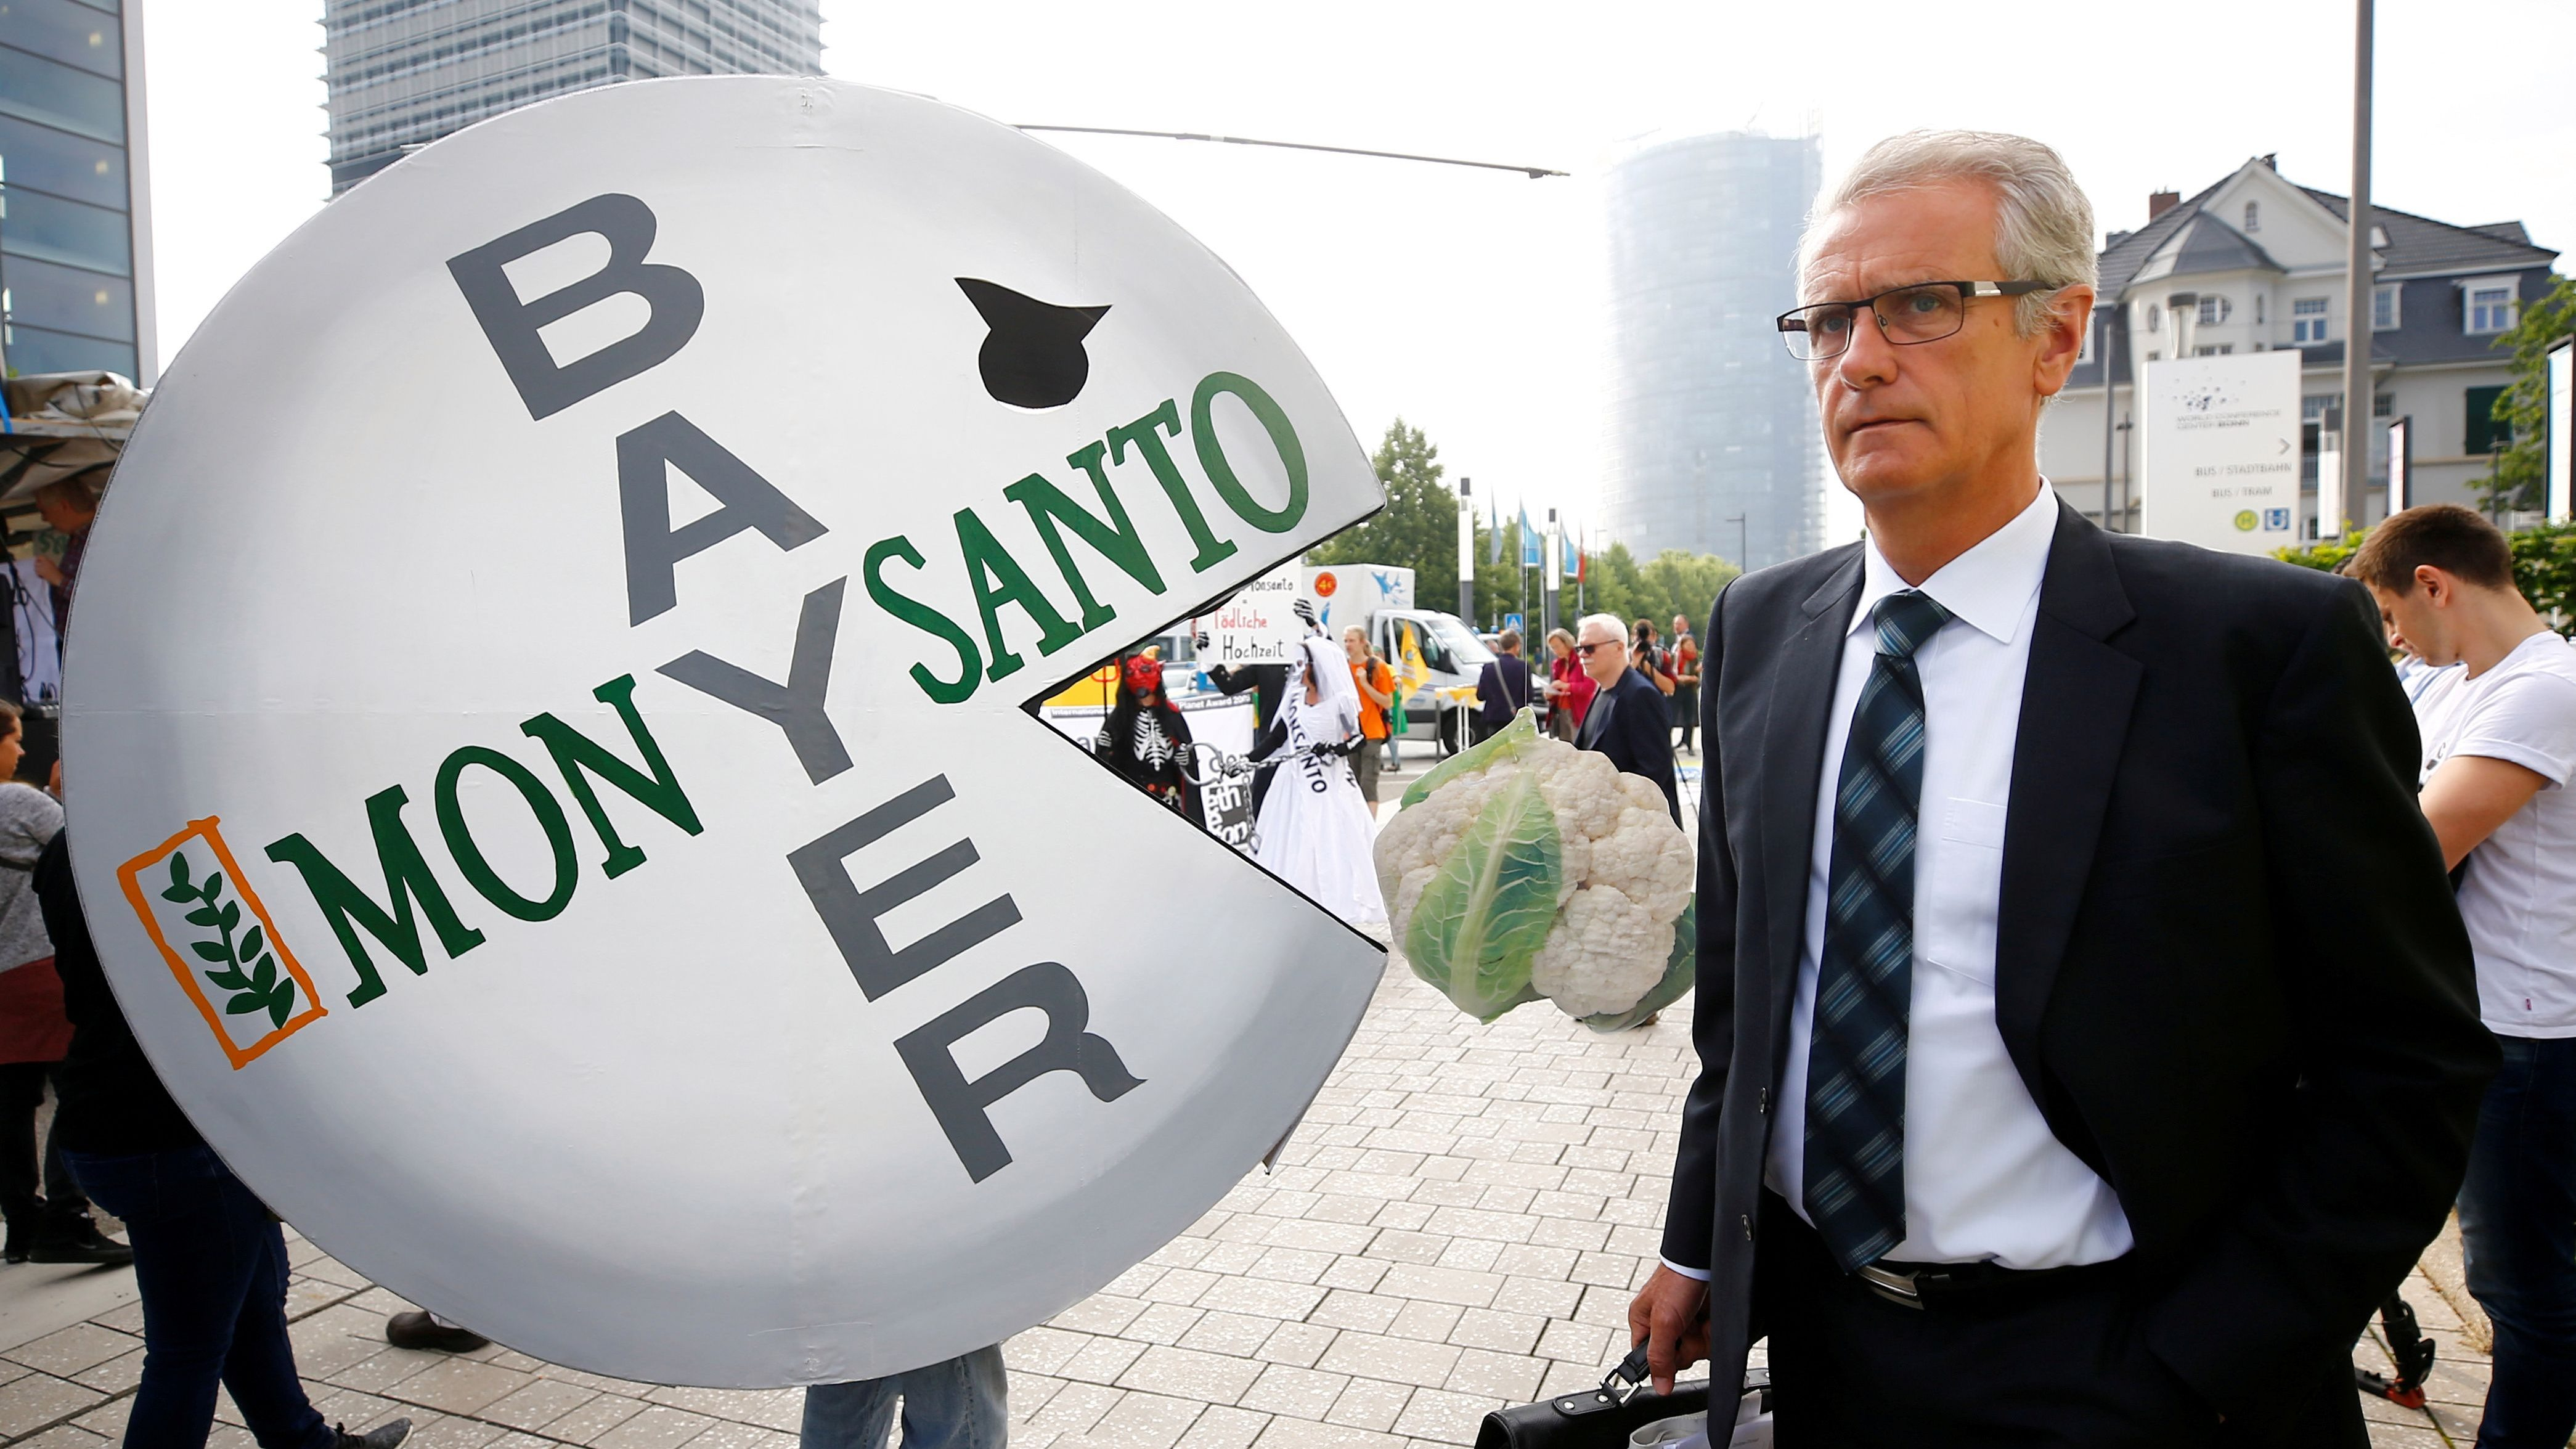 Protester holding a sign at the Bayer shareholder meeting in Bonn, Germany, protesting the purchase of Monsanto.